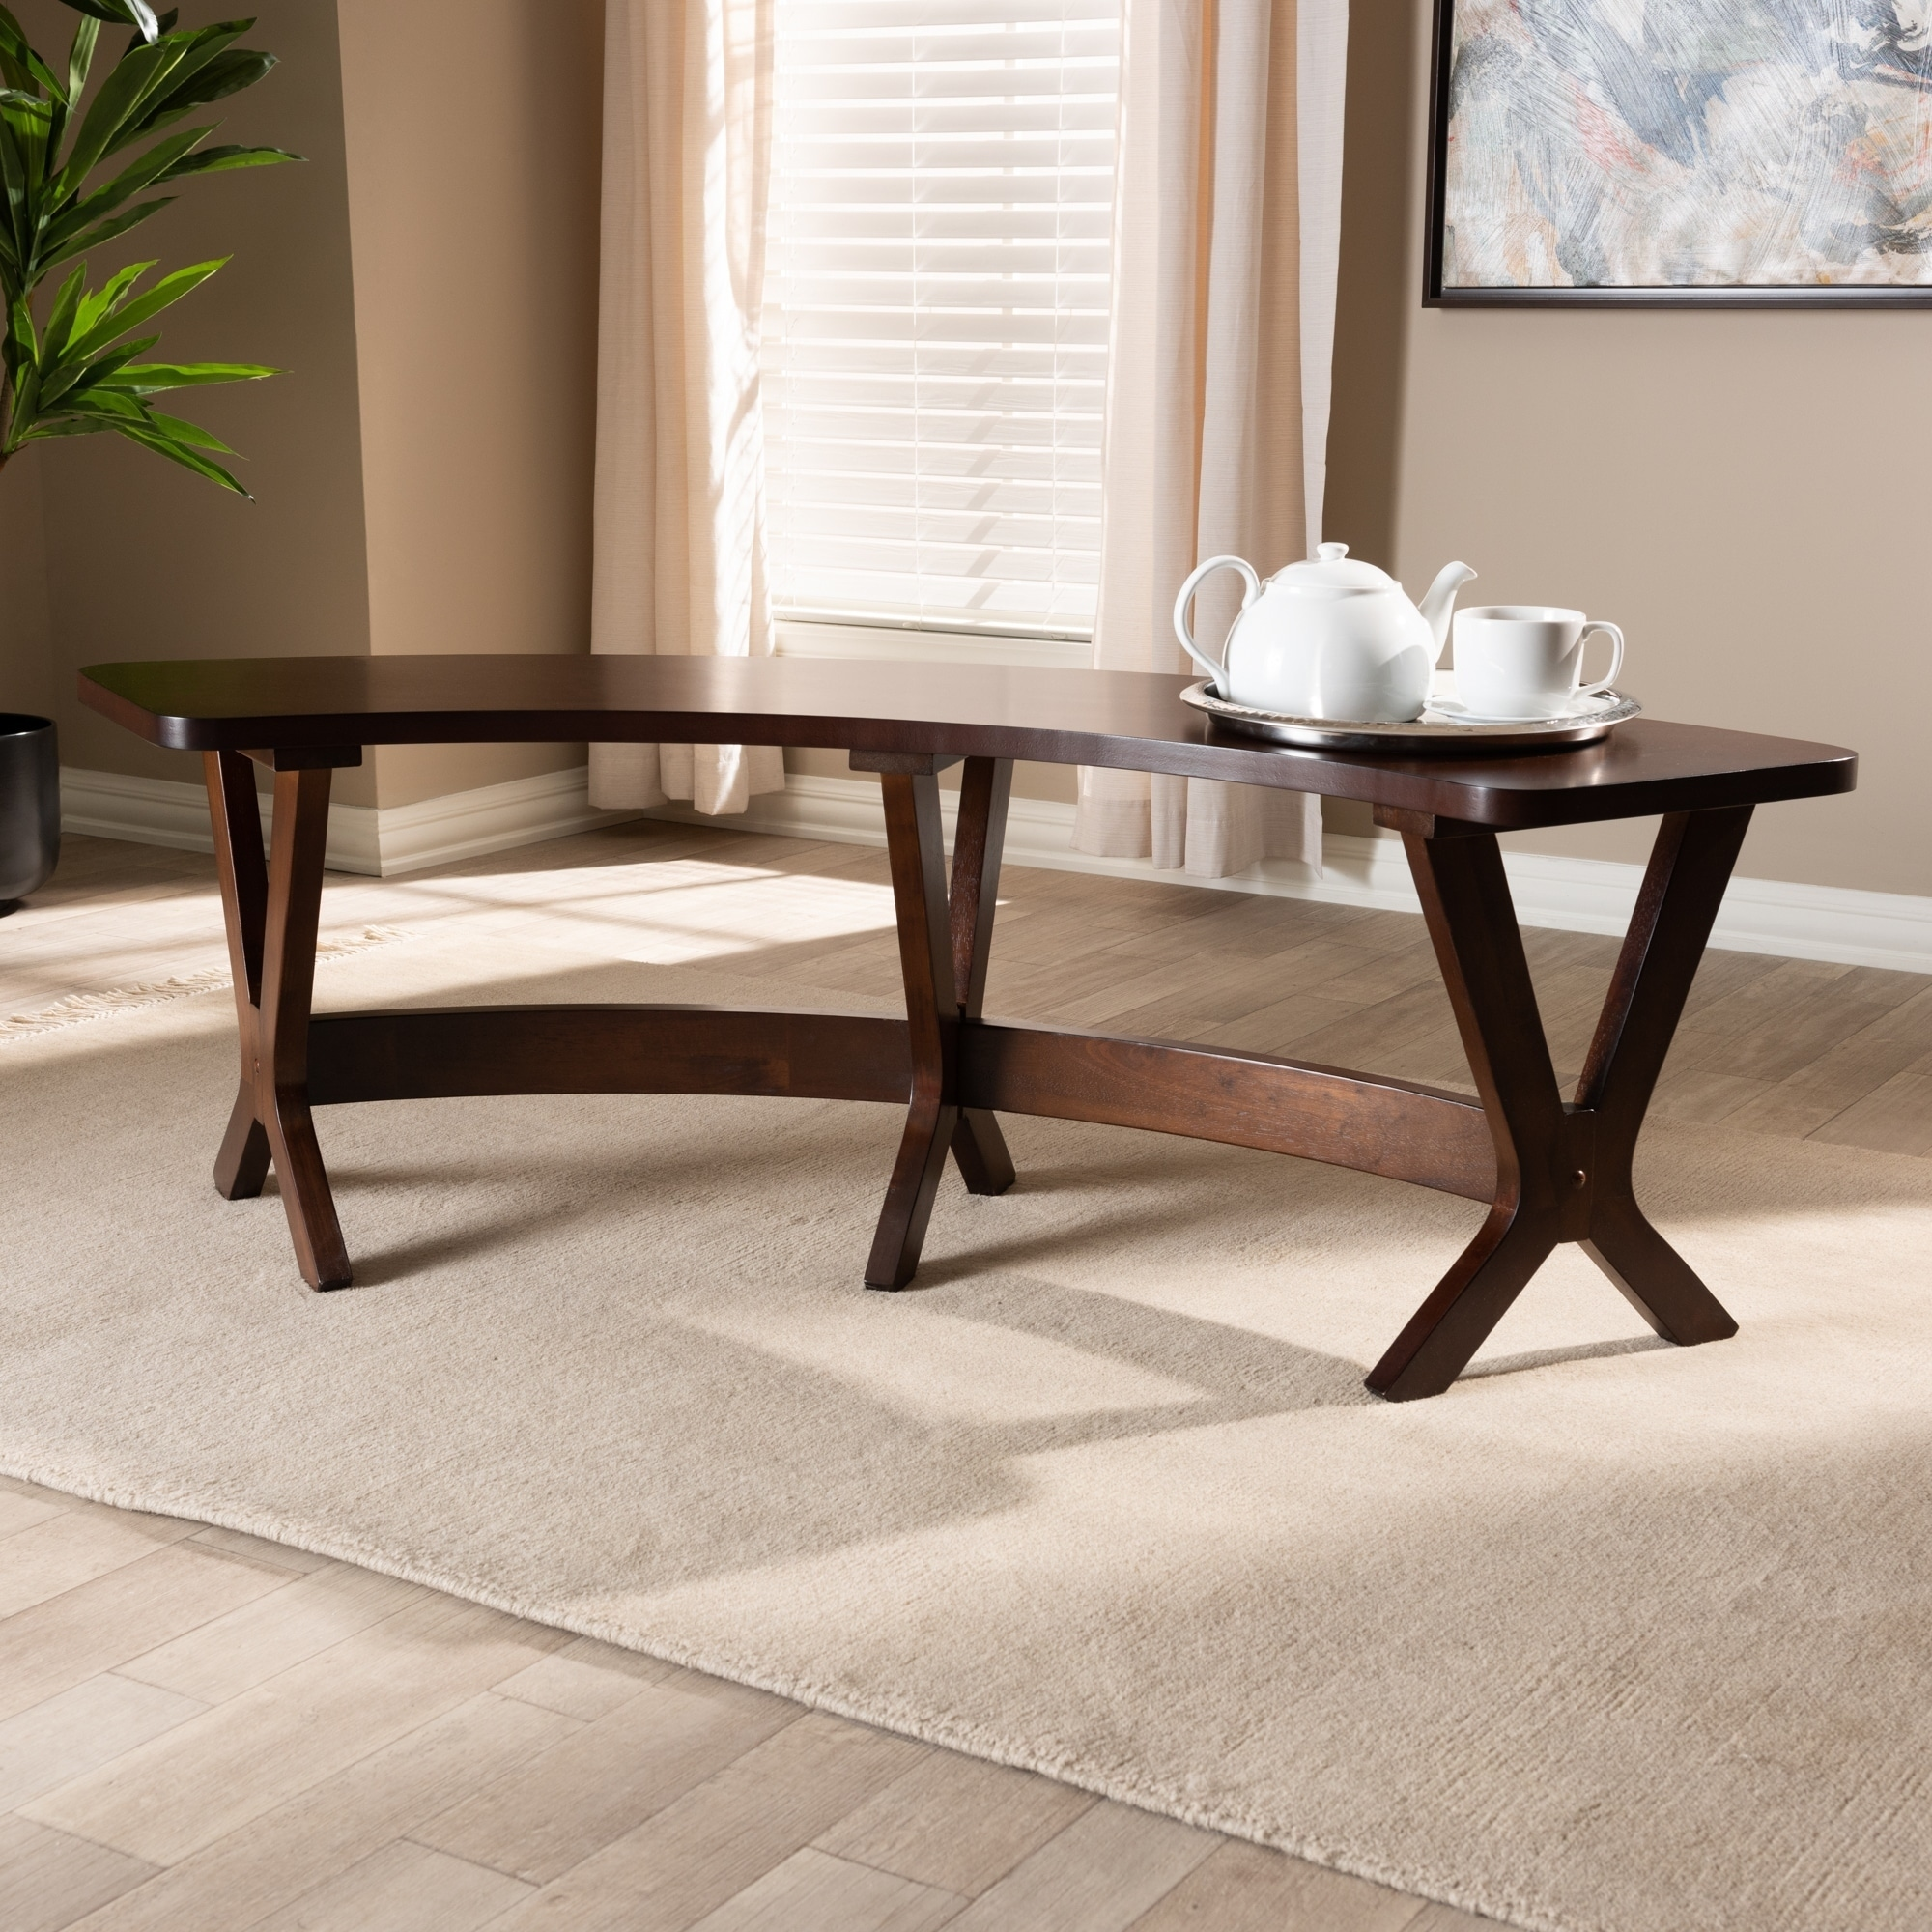 Picture of: Mid Century Walnut Wood Curved Dining Bench On Sale Overstock 27735402